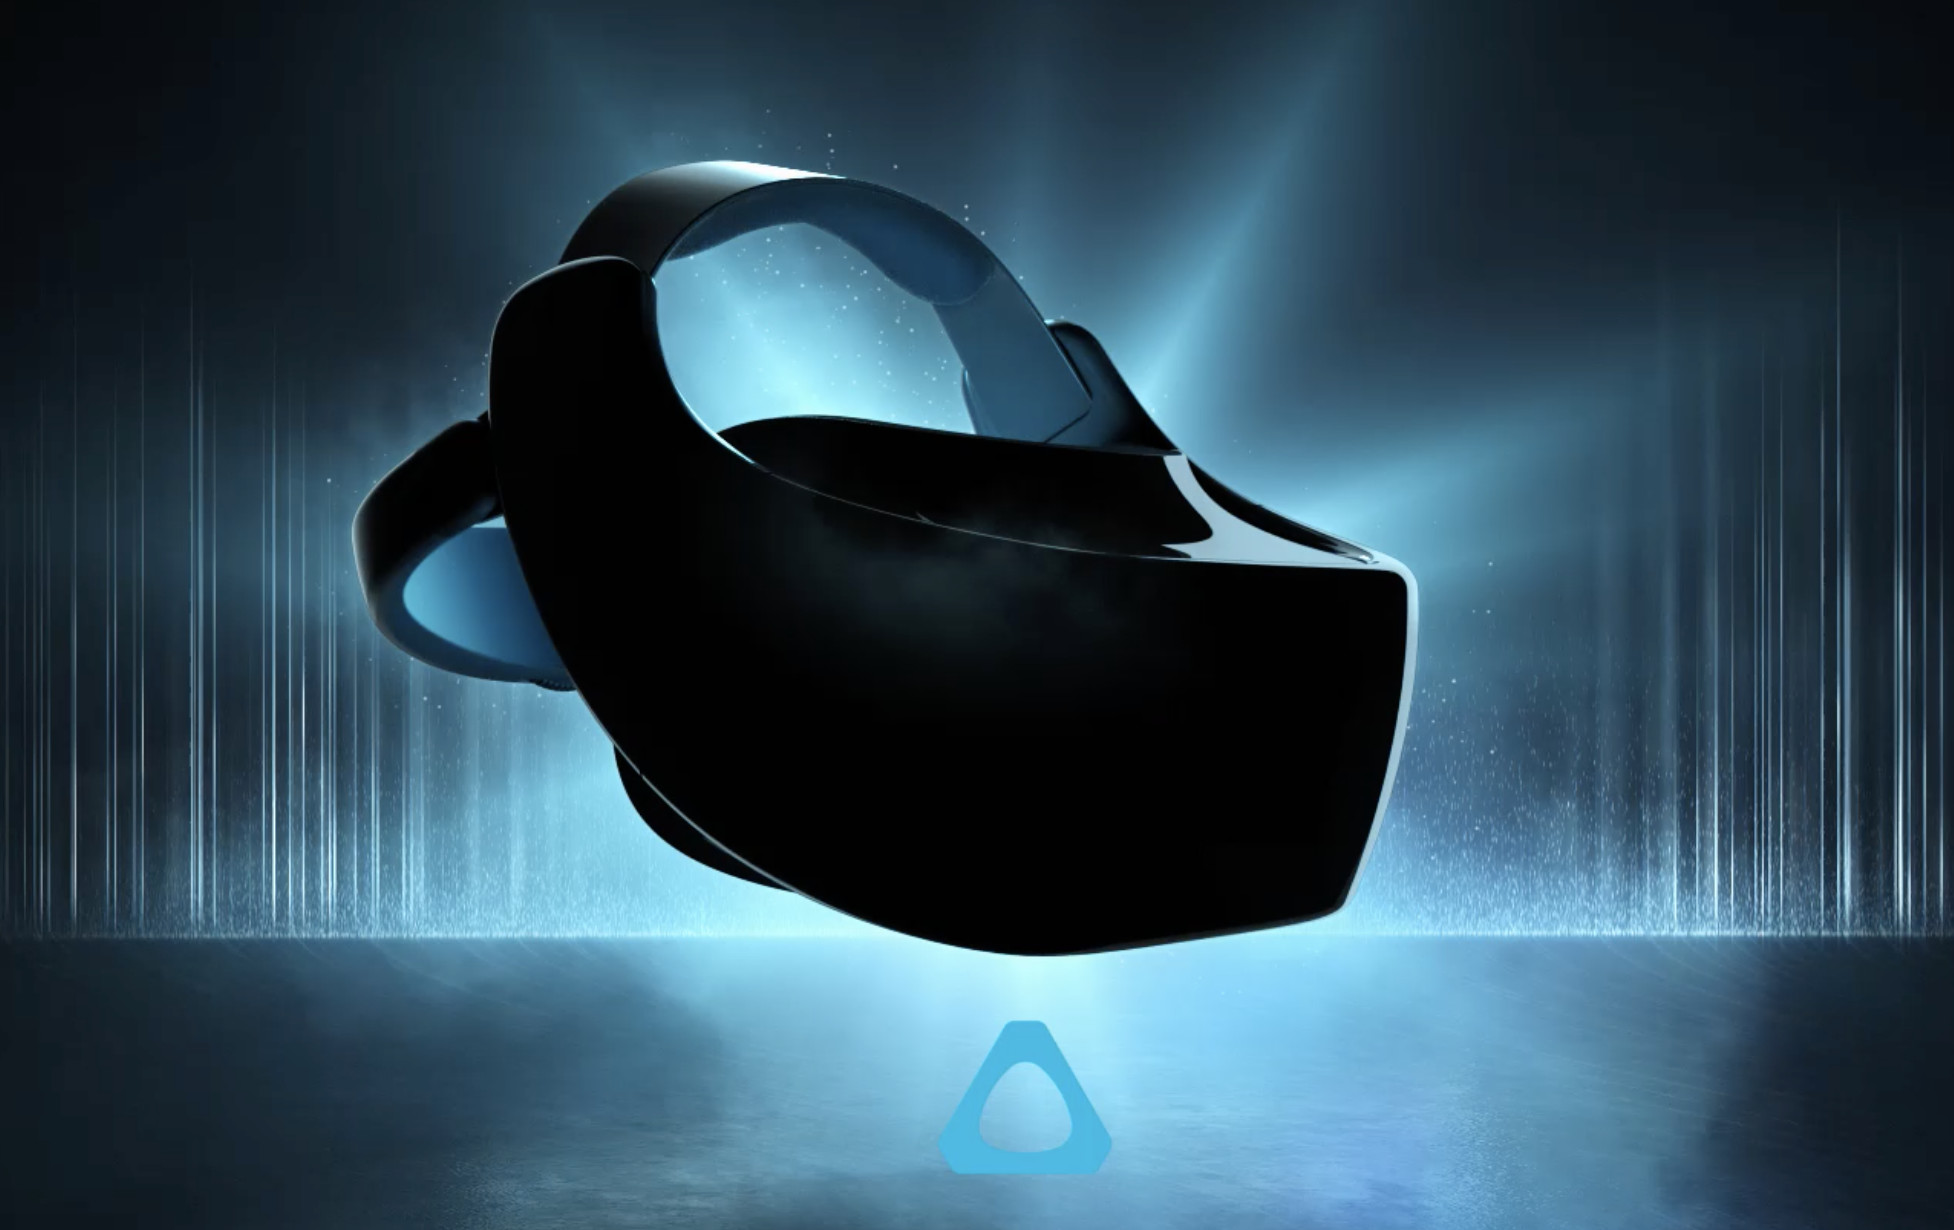 HTC unveils a standalone VR headset called Vive Focus